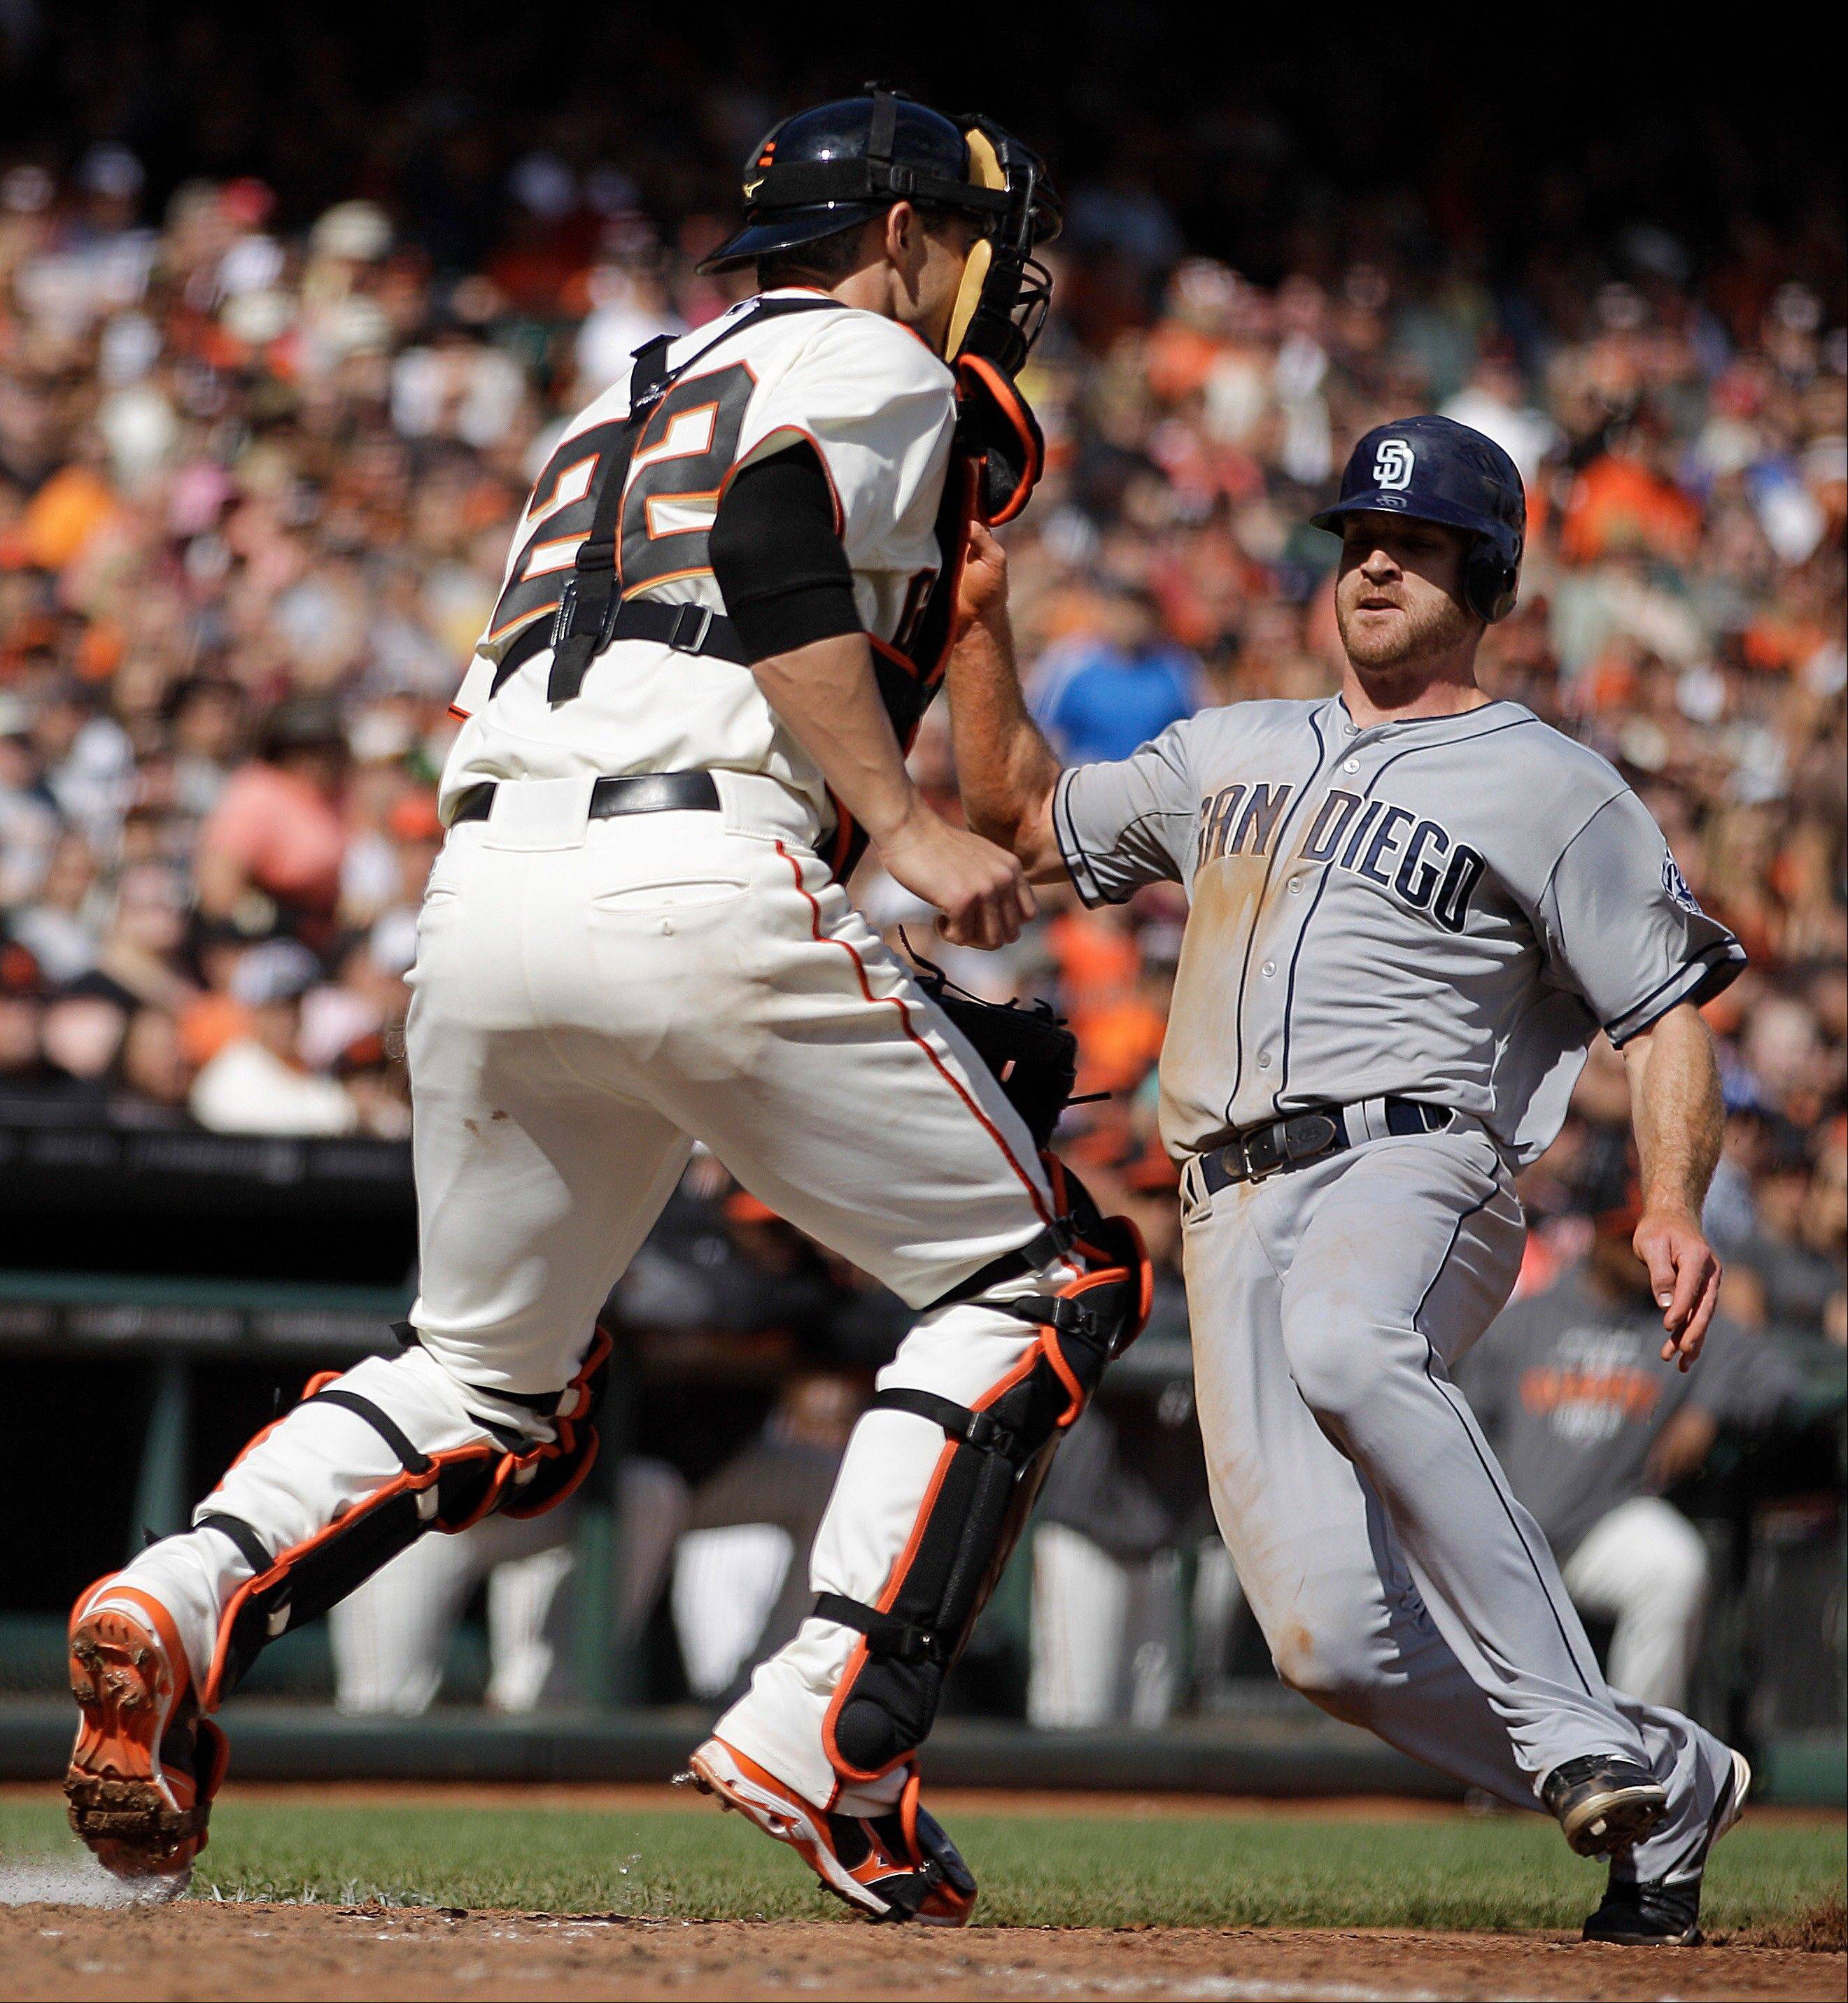 The Padres' Logan Forsythe slides past San Francisco Giants catcher Eli Whiteside in the fifth inning Sunday in San Francisco. Forsythe scored on a single by Yasmani Grandal.